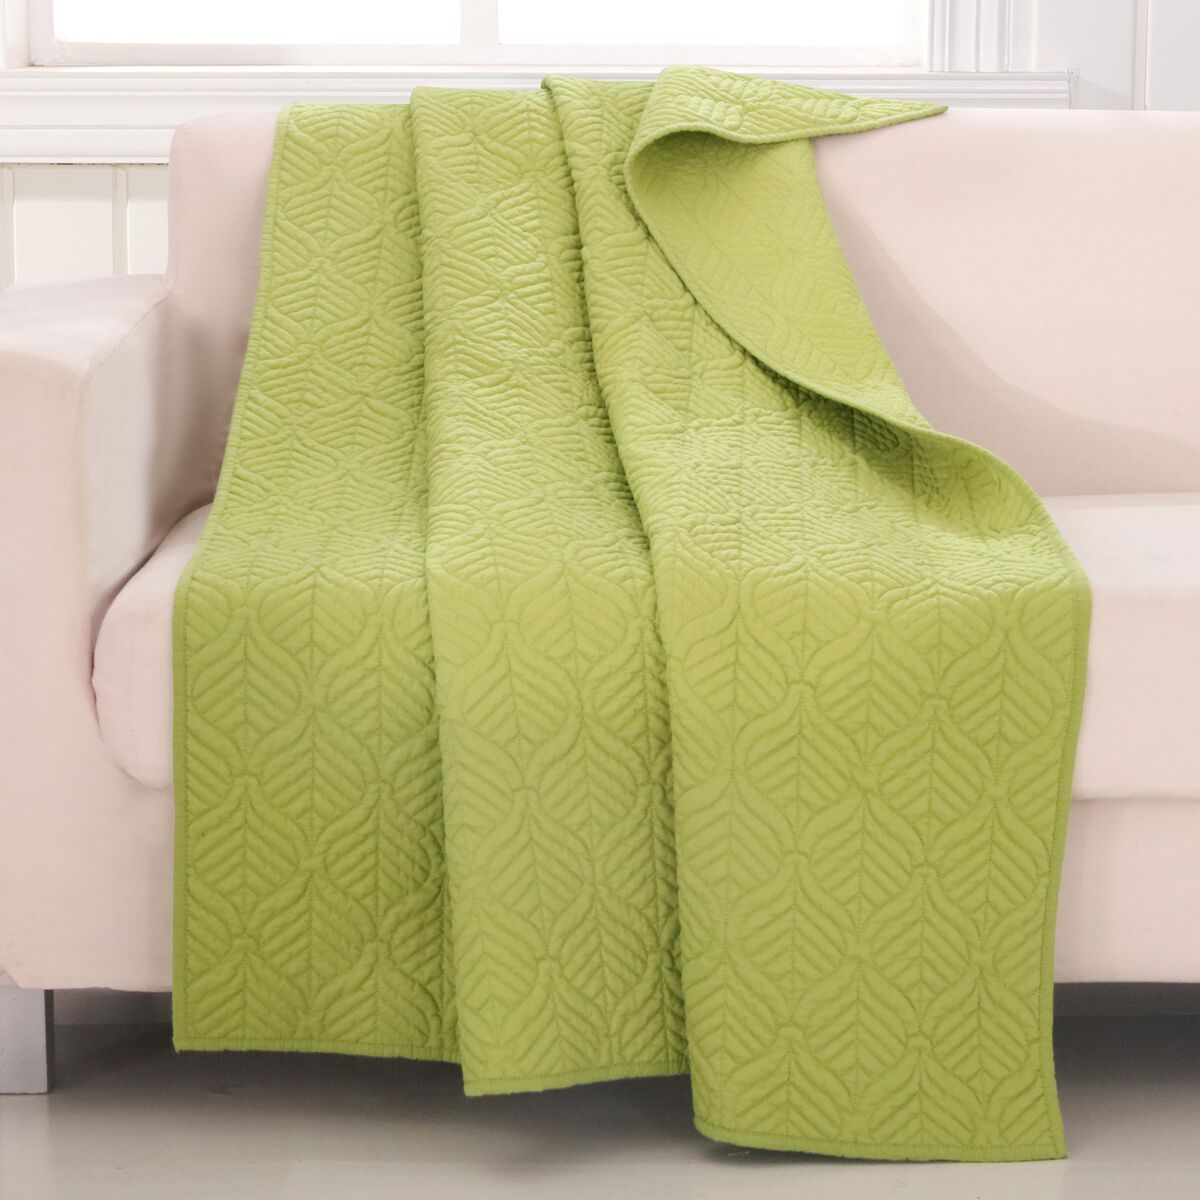 Piper Green Accessory Throw